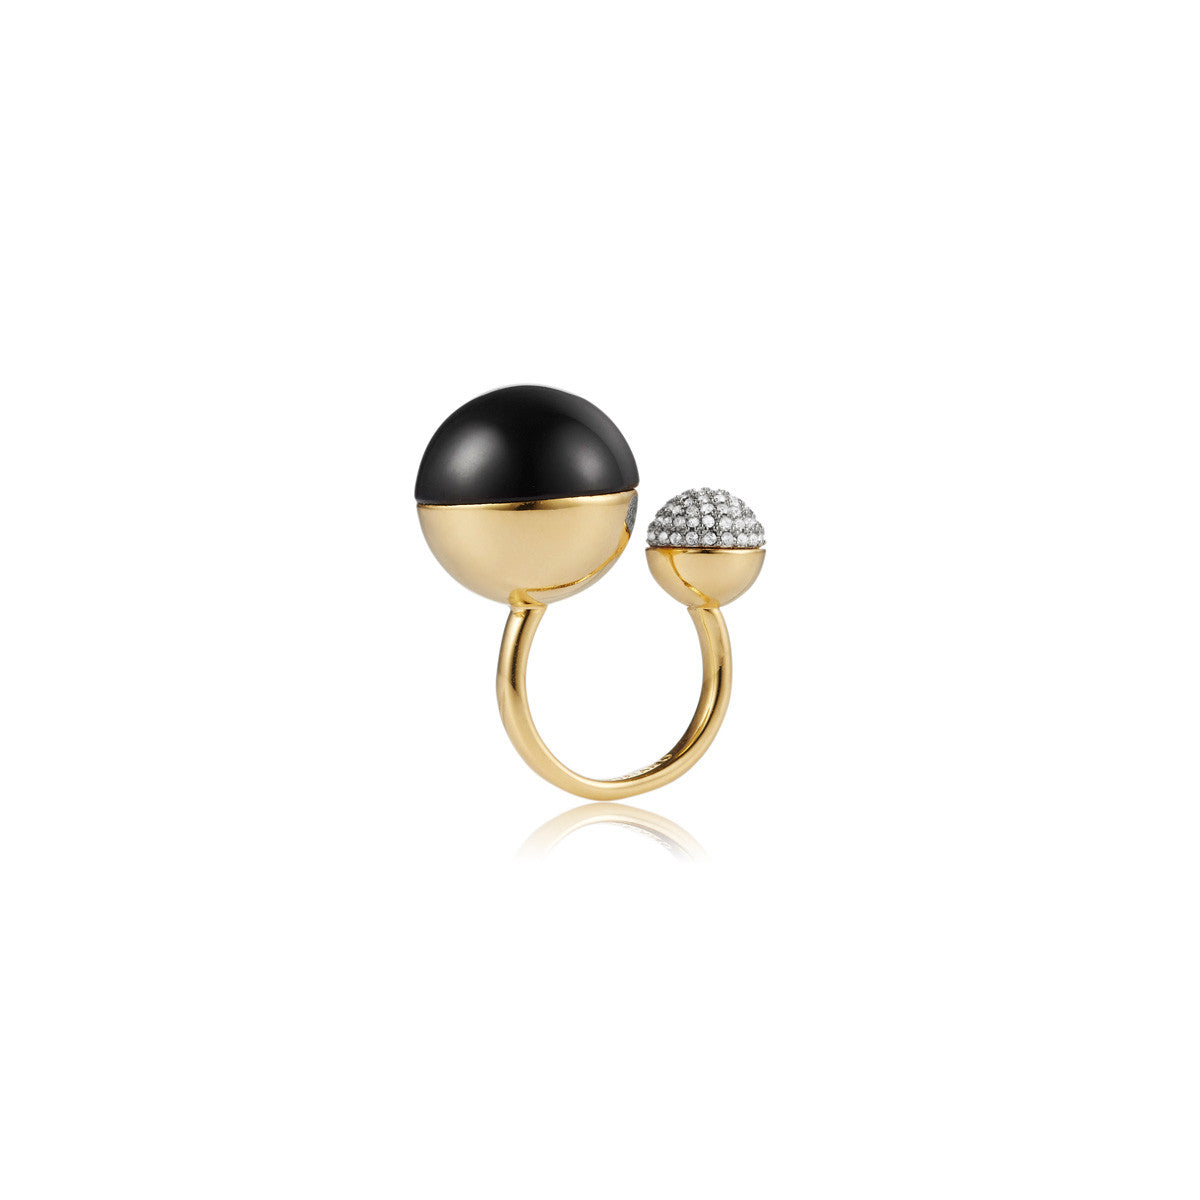 Solid brass, 18K gold plated Luna Ascension ring with black onyx and Swarovski® crystal pavè detailing – front